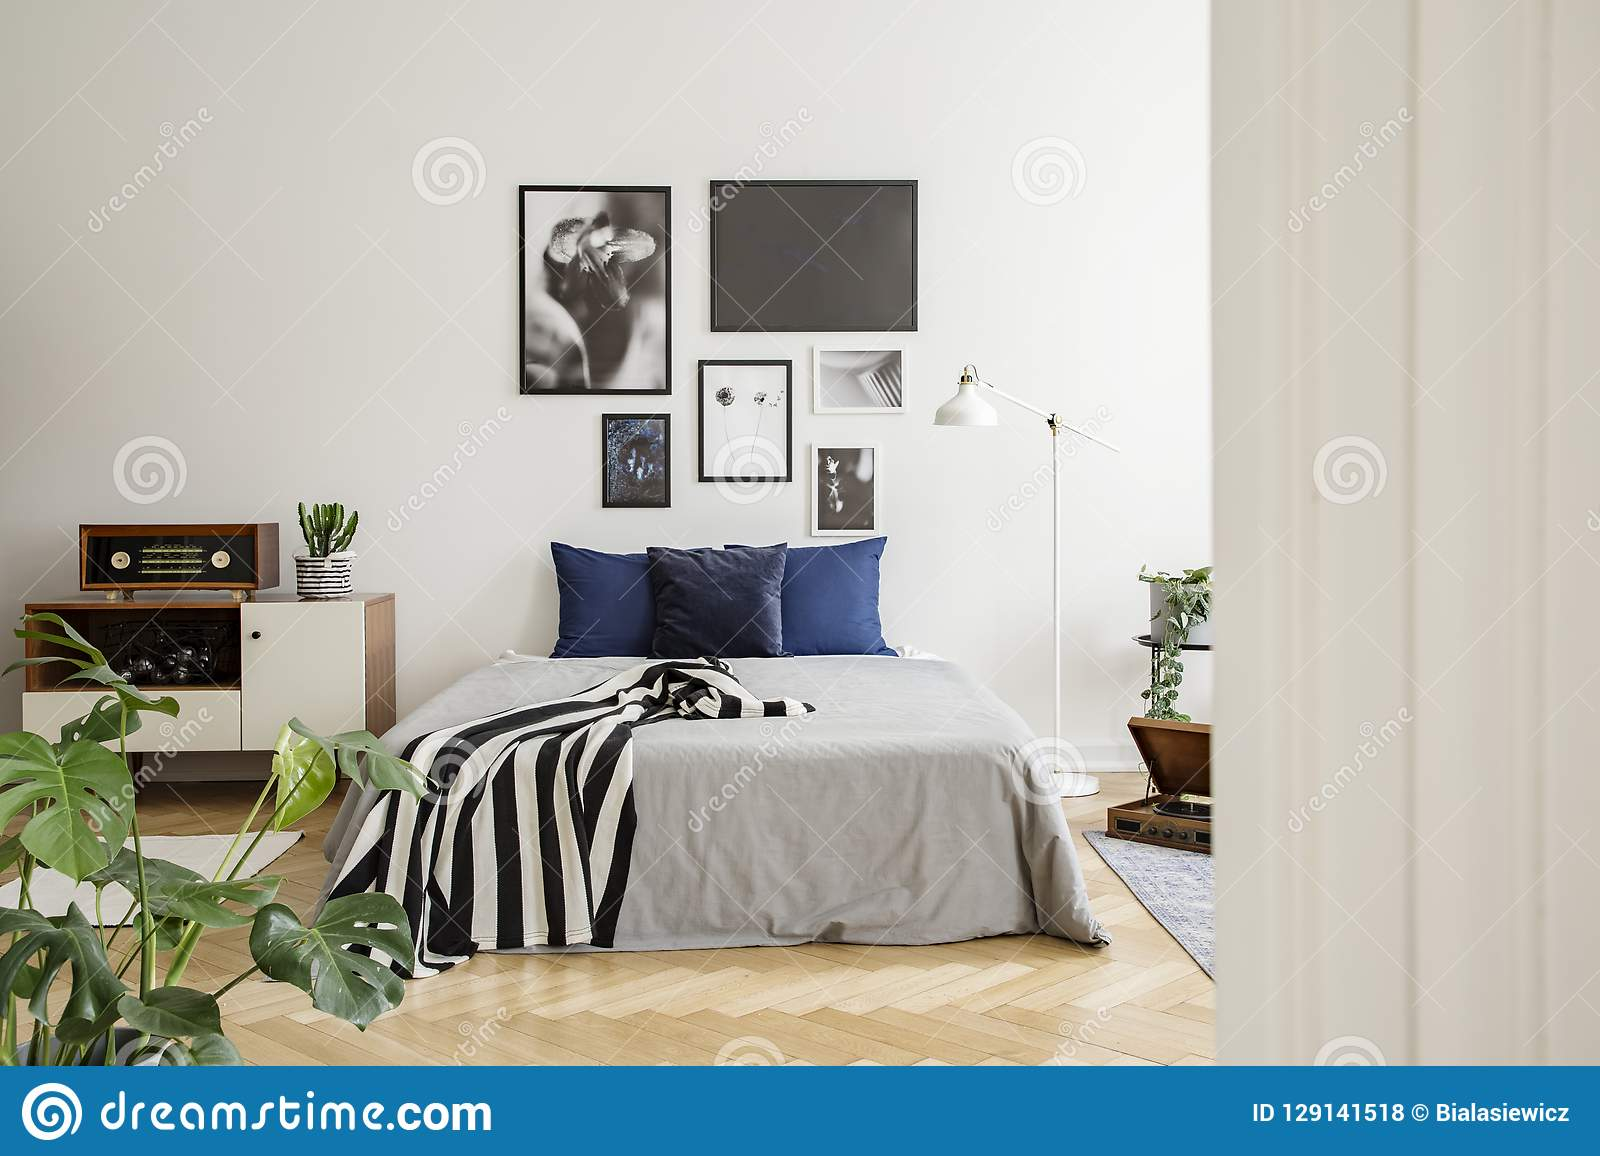 White wooden commode next to bed with dark blue pillows, grey duvet and striped black and white blanket in bedroom